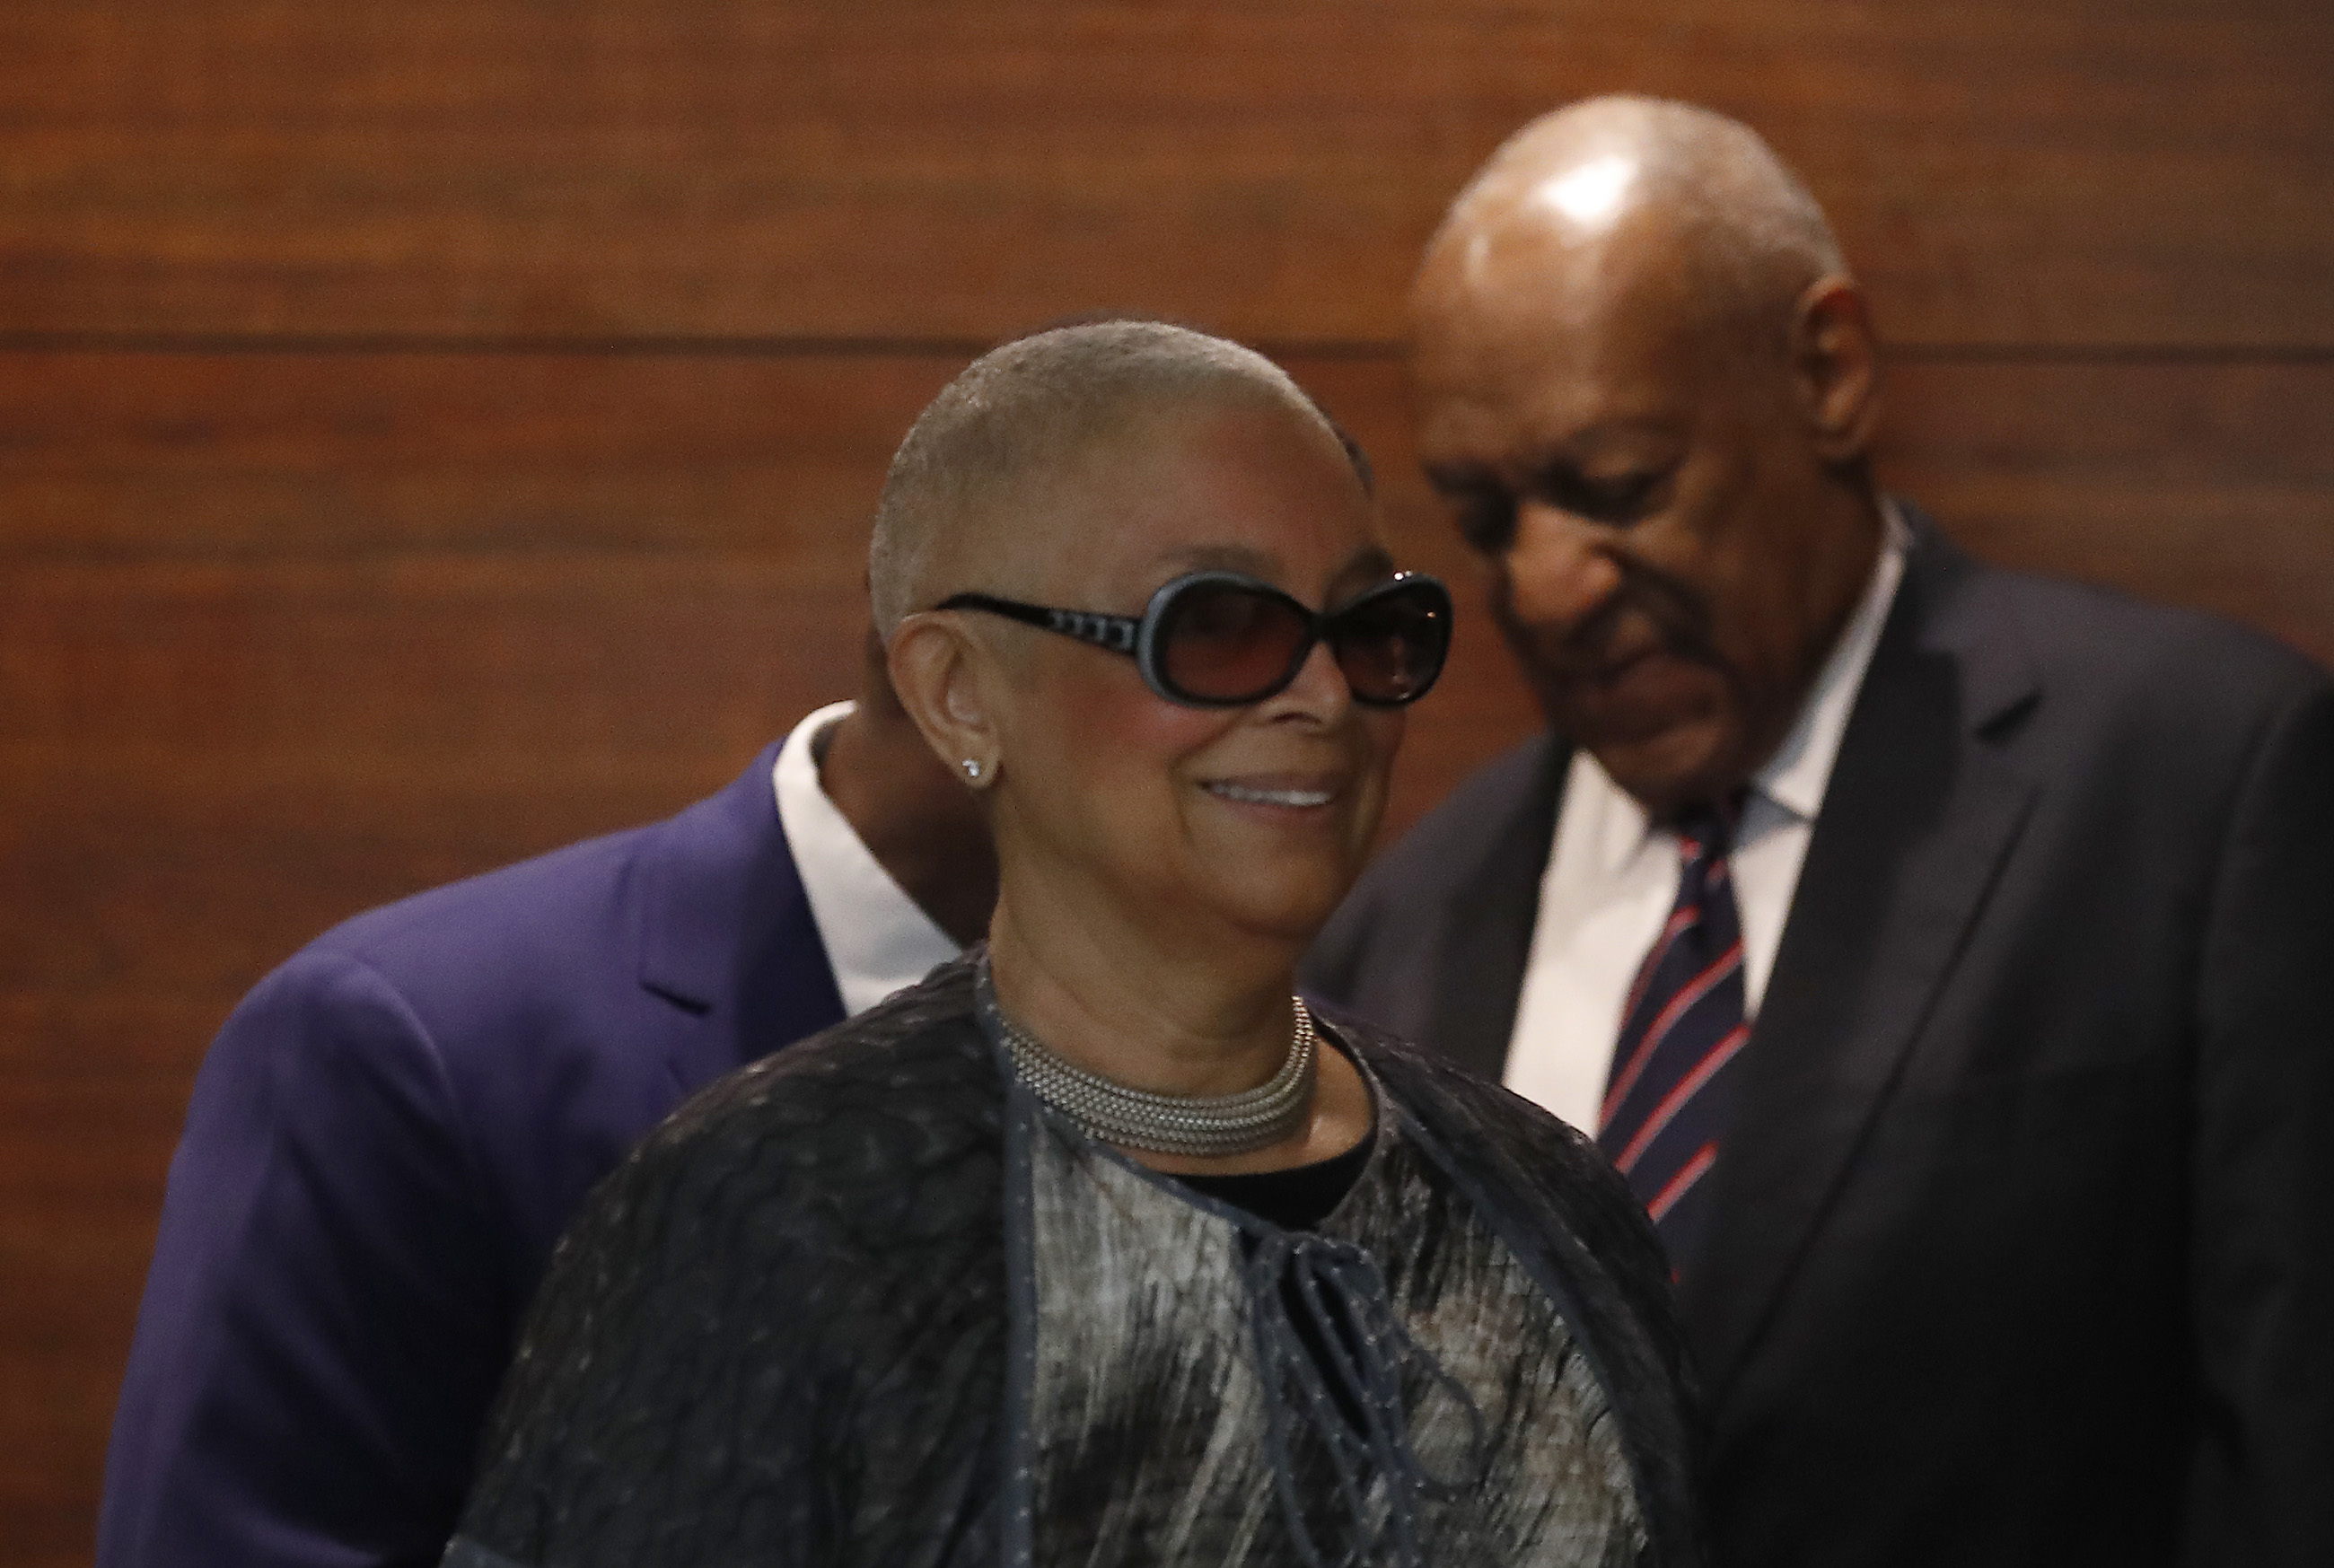 Camille Cosby, at left, and her husband Bill Cosby arrive at the Montgomery County Courthouse in Norristown, PA on June 12, 2017. Cosby is on trial for sexual assault.